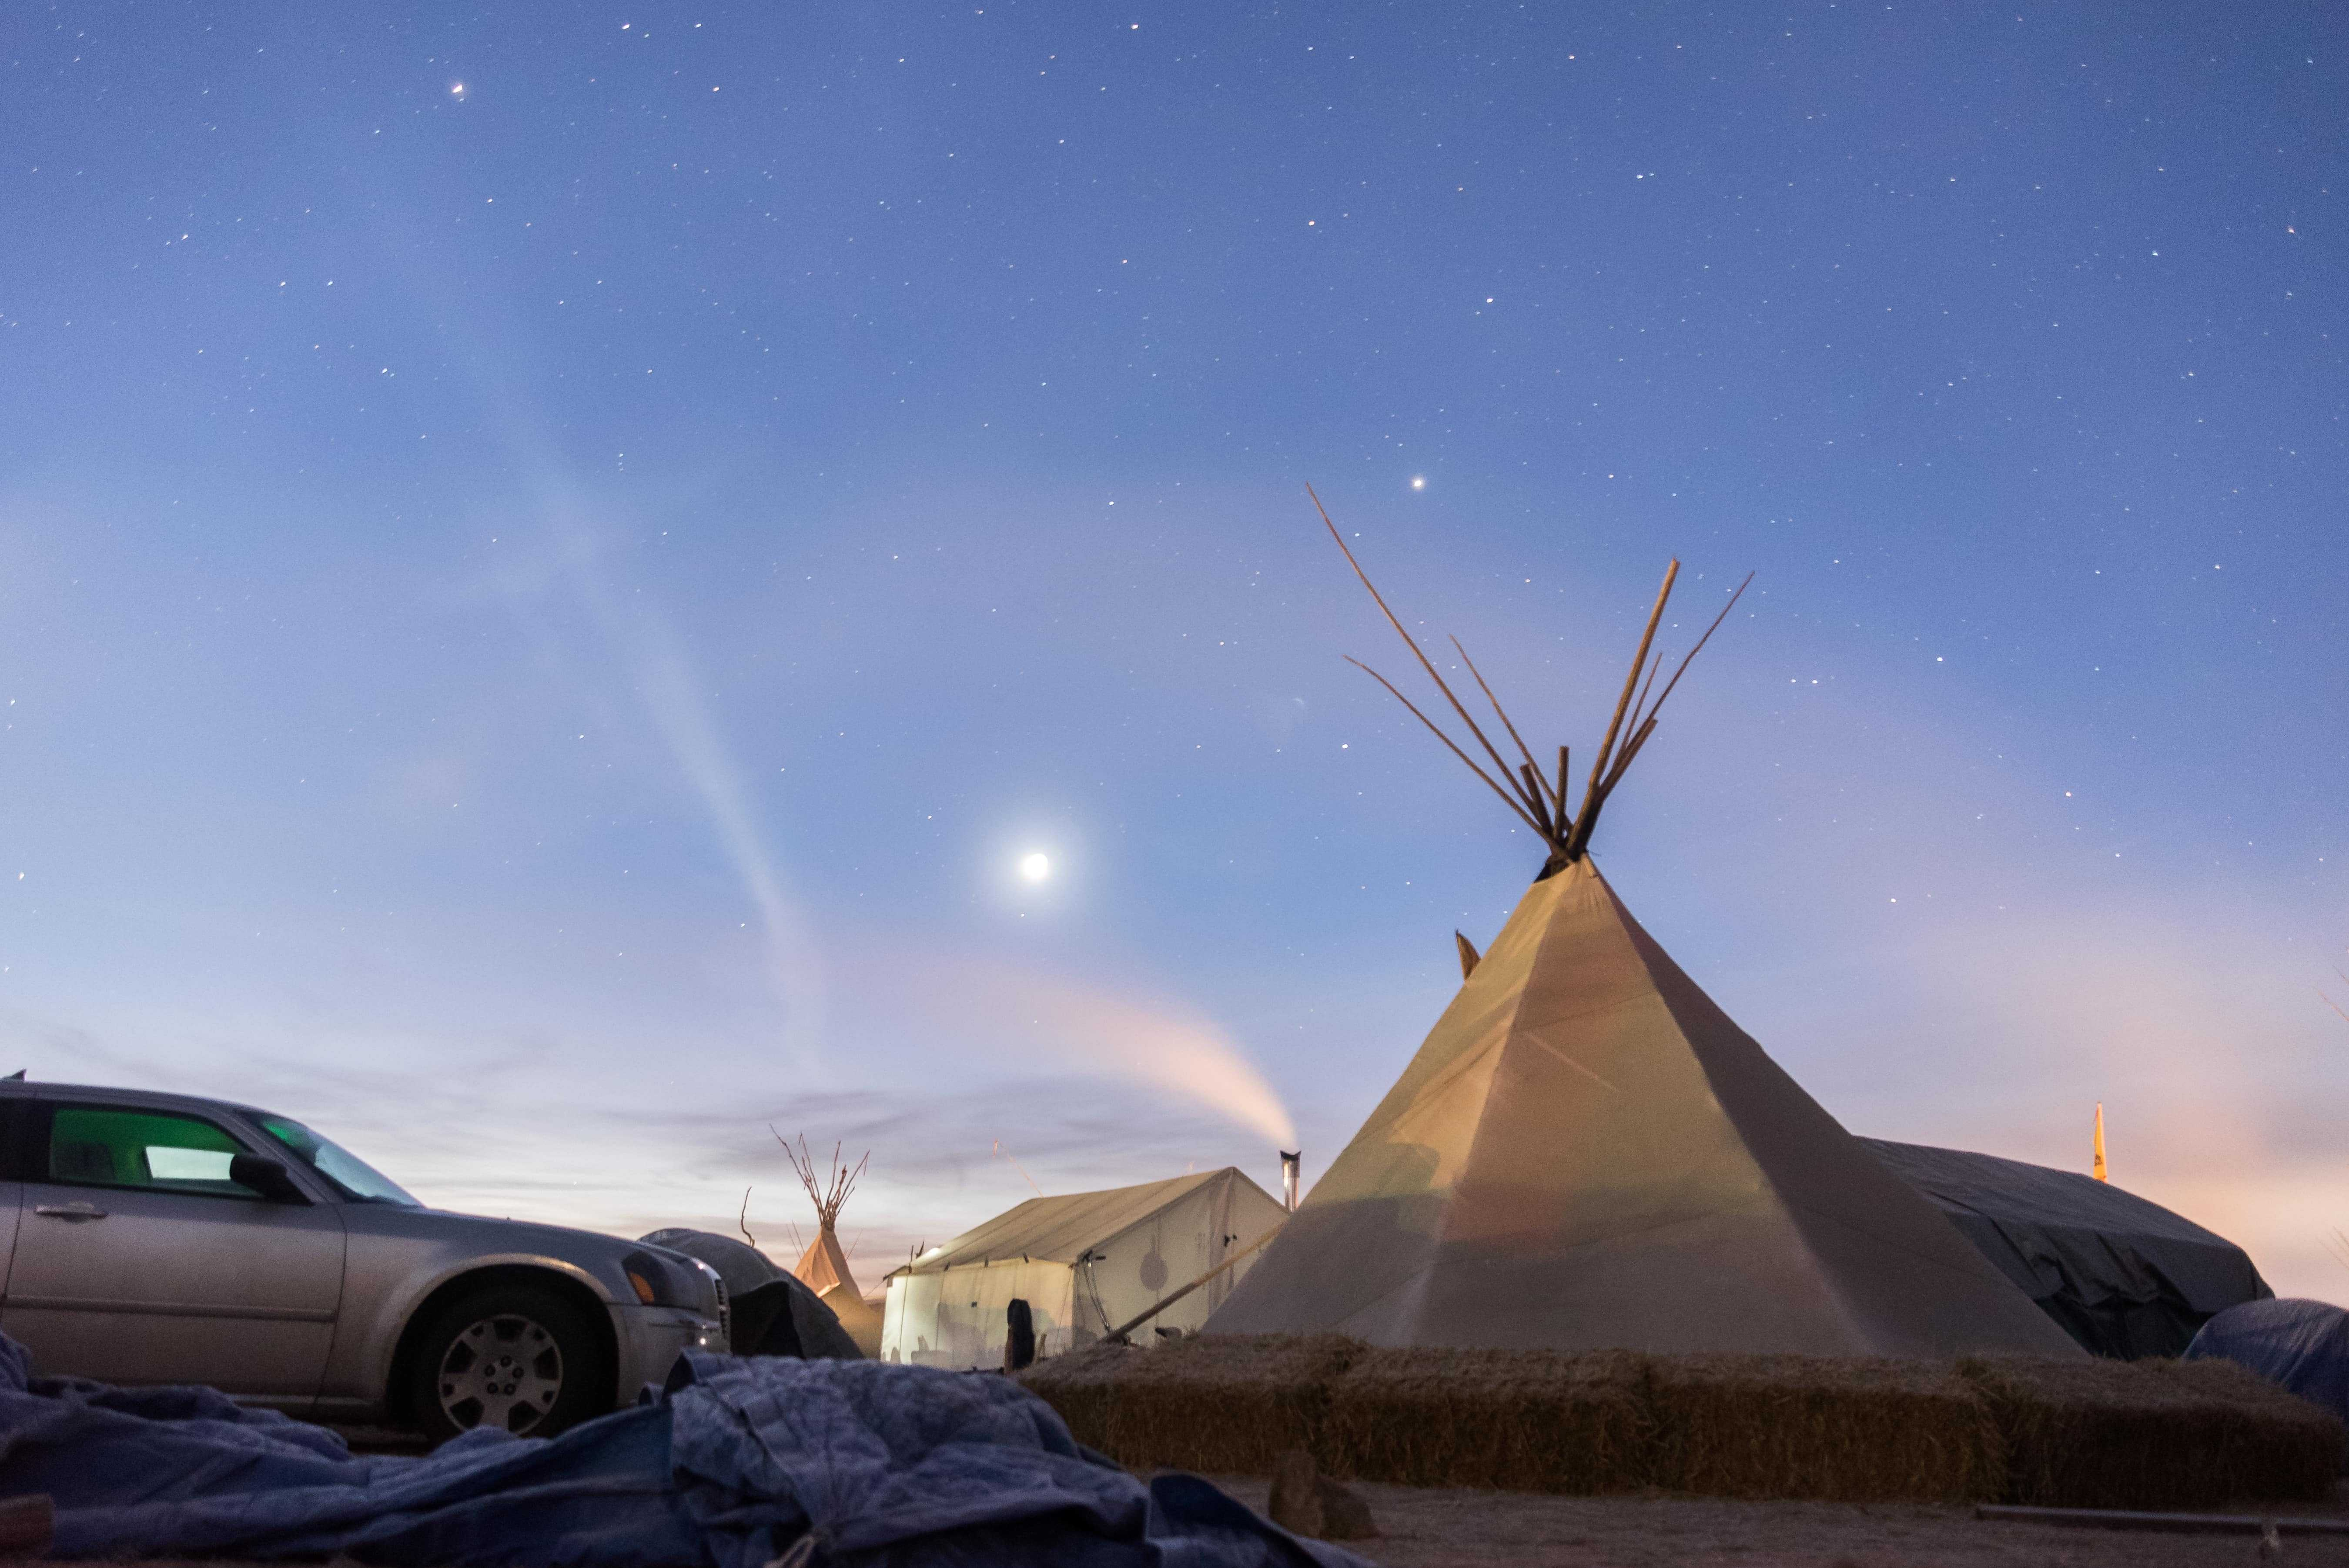 The stars begin to fade at Oceti Sakowin Camp in the early morning of Saturday, Nov. 26. The temperature was around 16 degrees Fahrenheit before the sun rose.